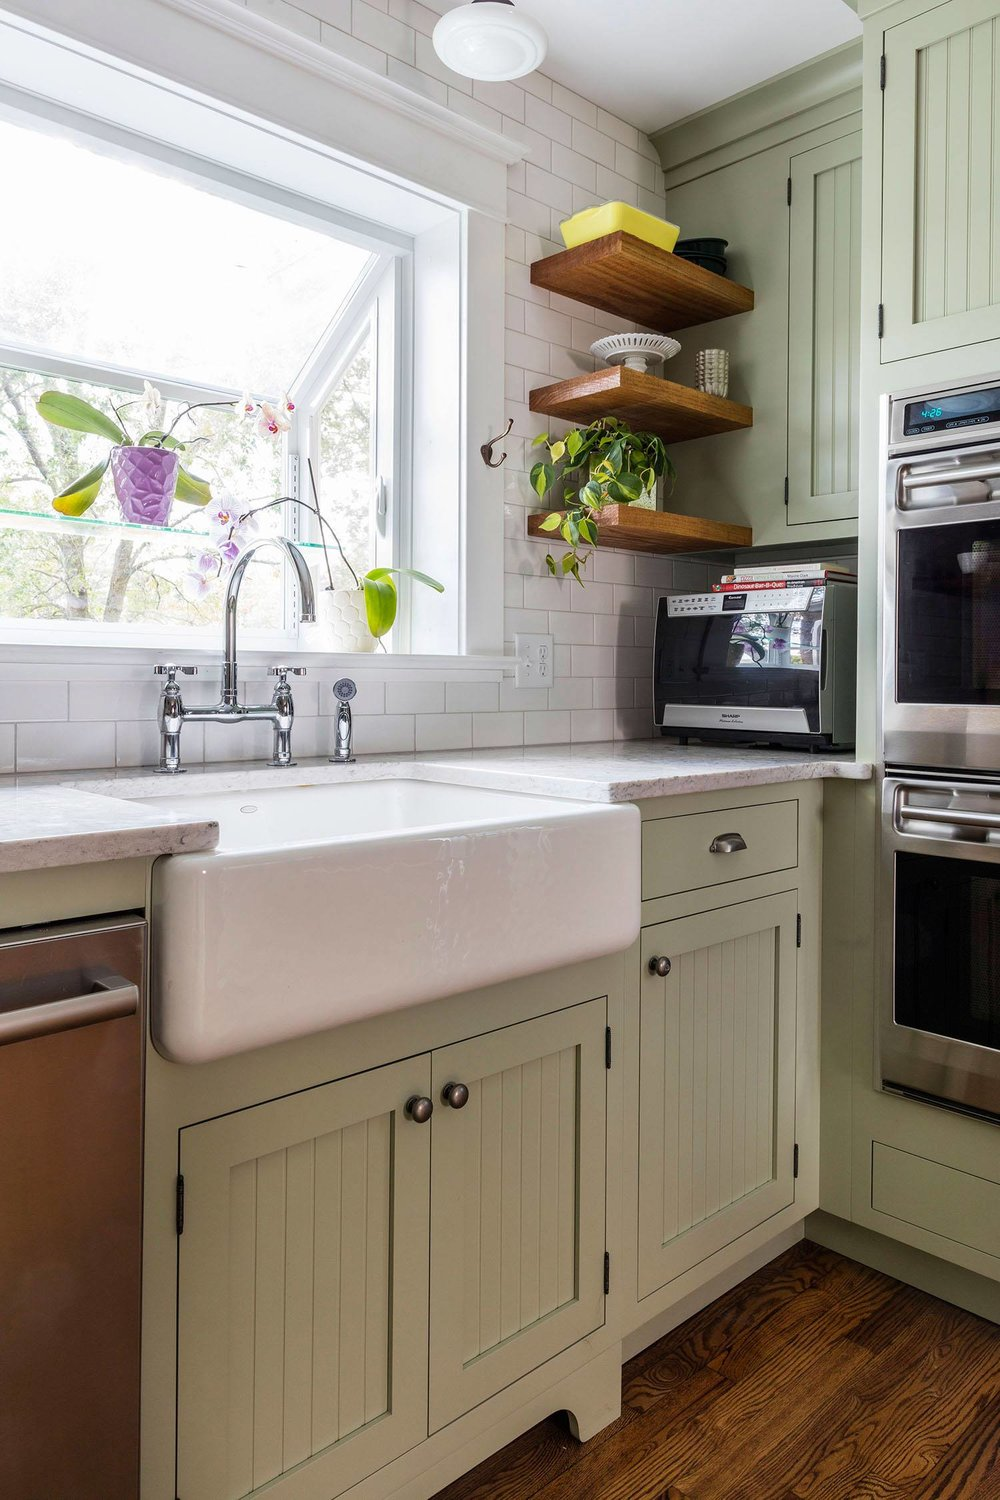 modern-vintage-kitchen-apron-sink-white.jpg